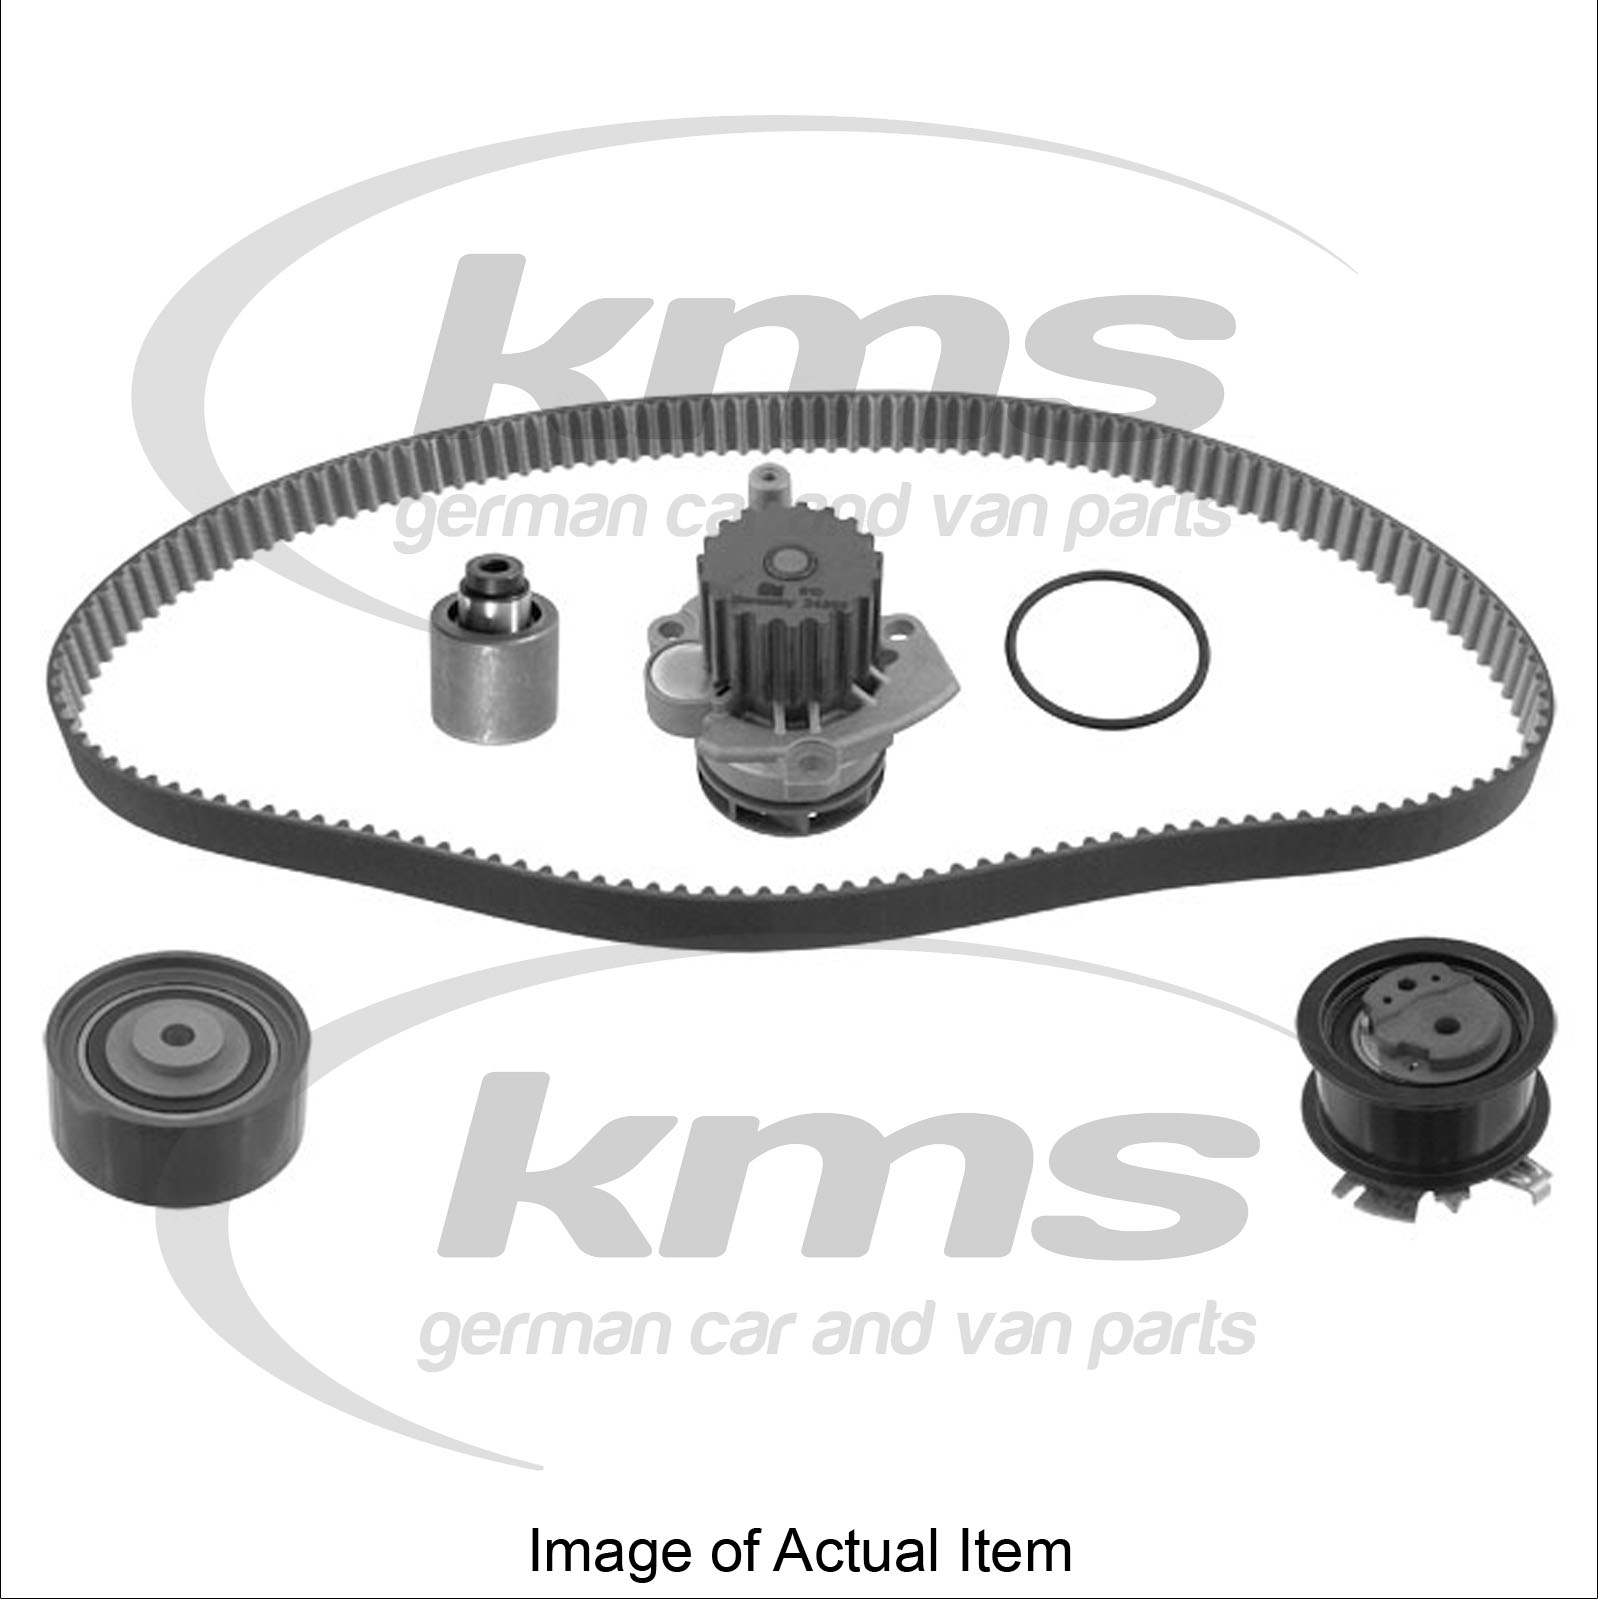 volvo xc70 timing belt replacement instructions